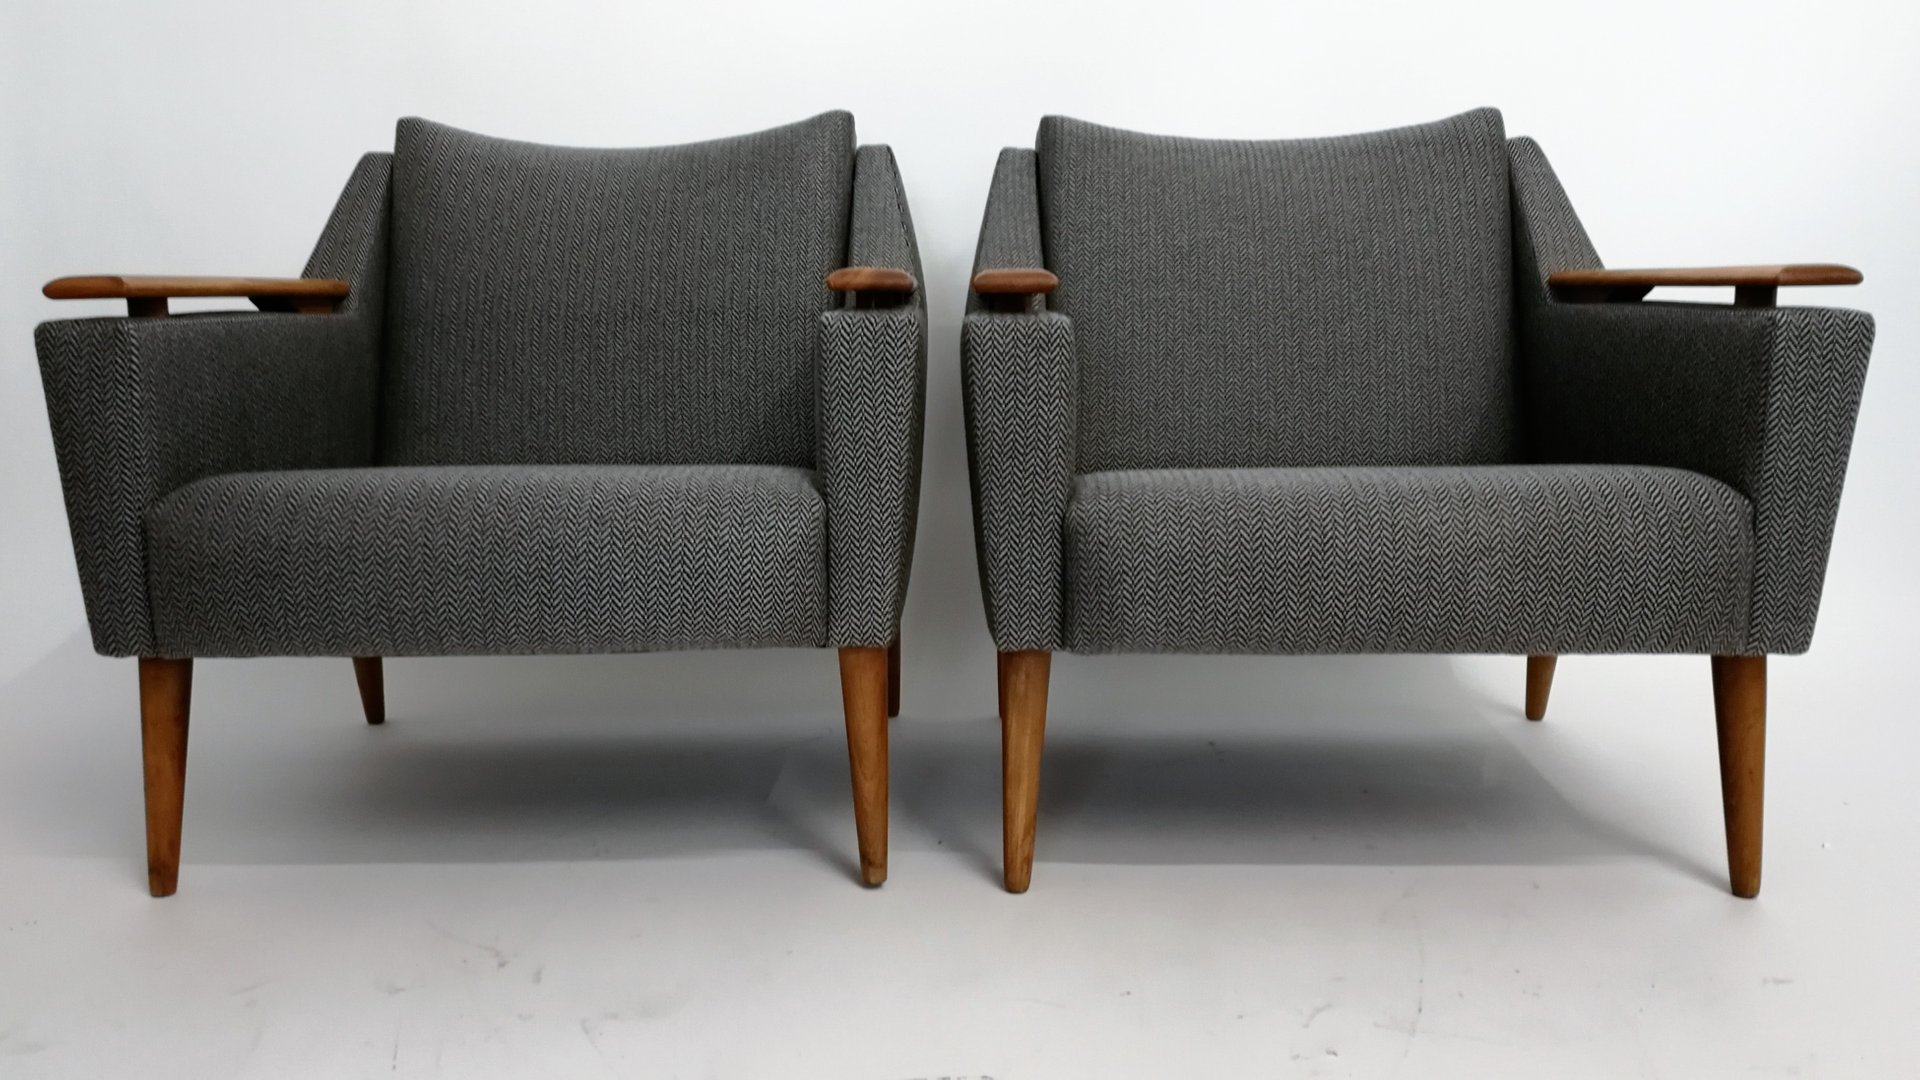 sessel mit fischgr tmuster von knoll 1950er bei pamono kaufen. Black Bedroom Furniture Sets. Home Design Ideas